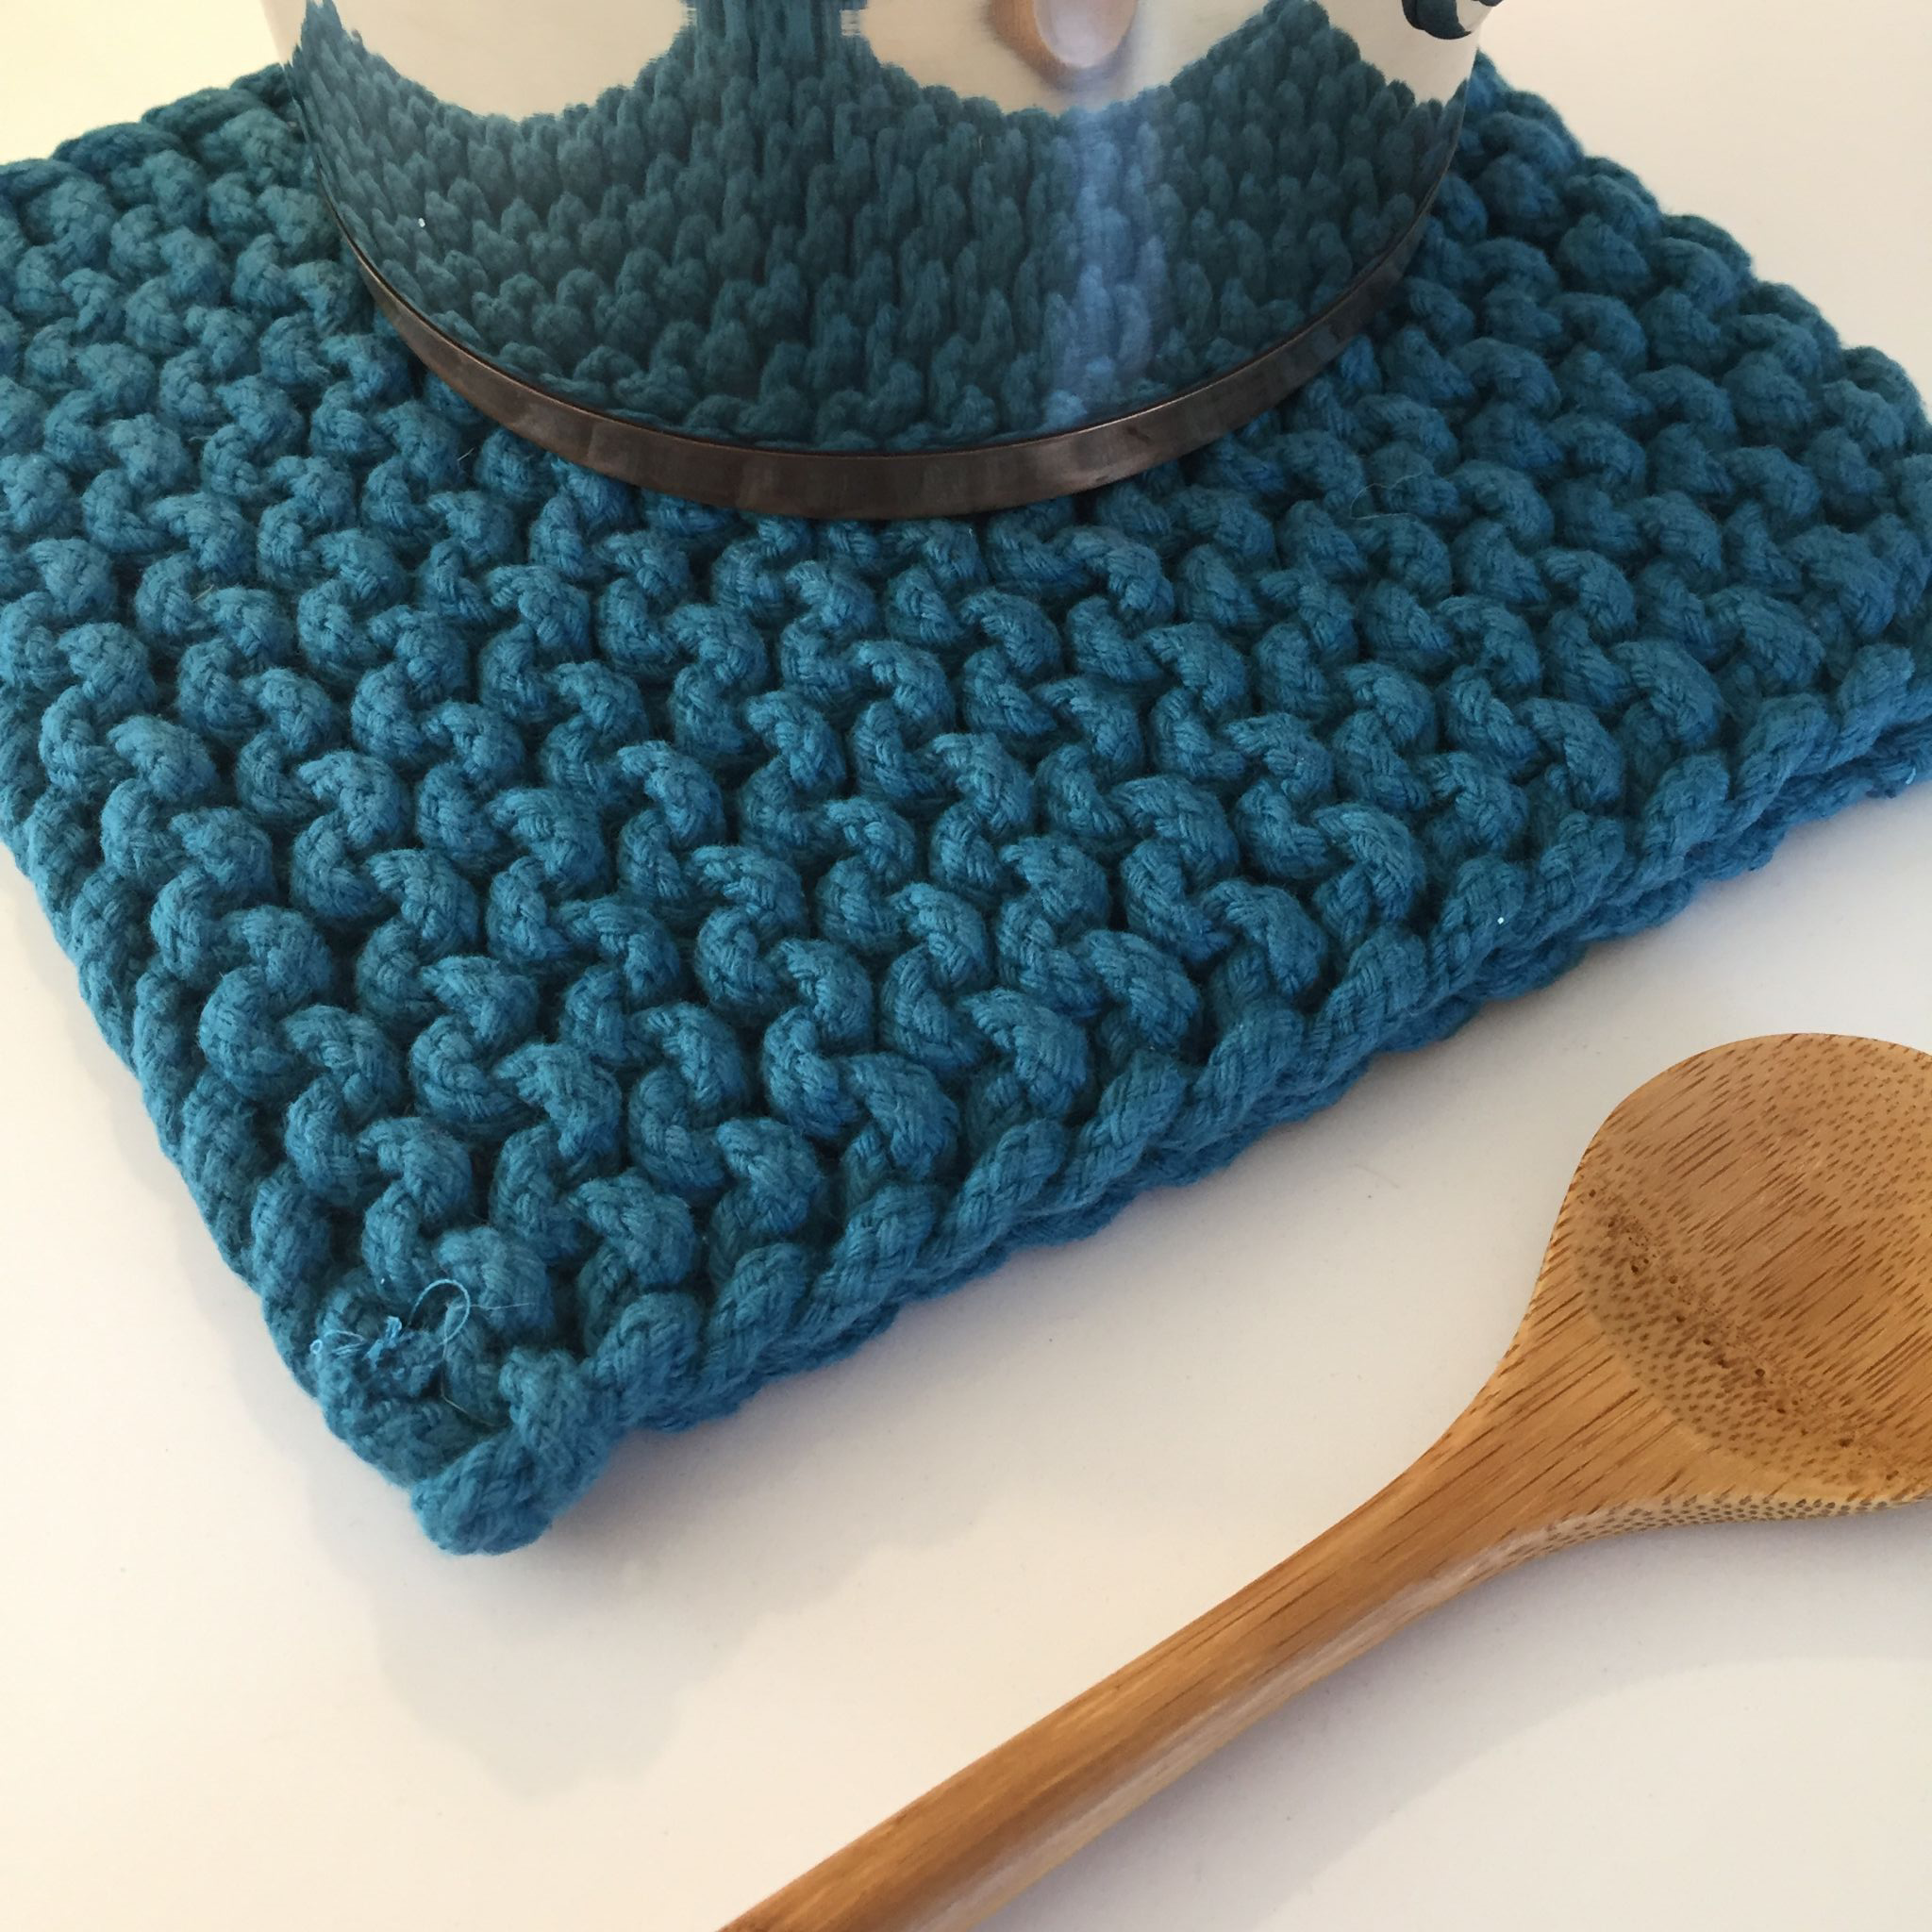 Crocheting Pot Holders : Protect your work surfaces with this beautiful crochet pot holder ...